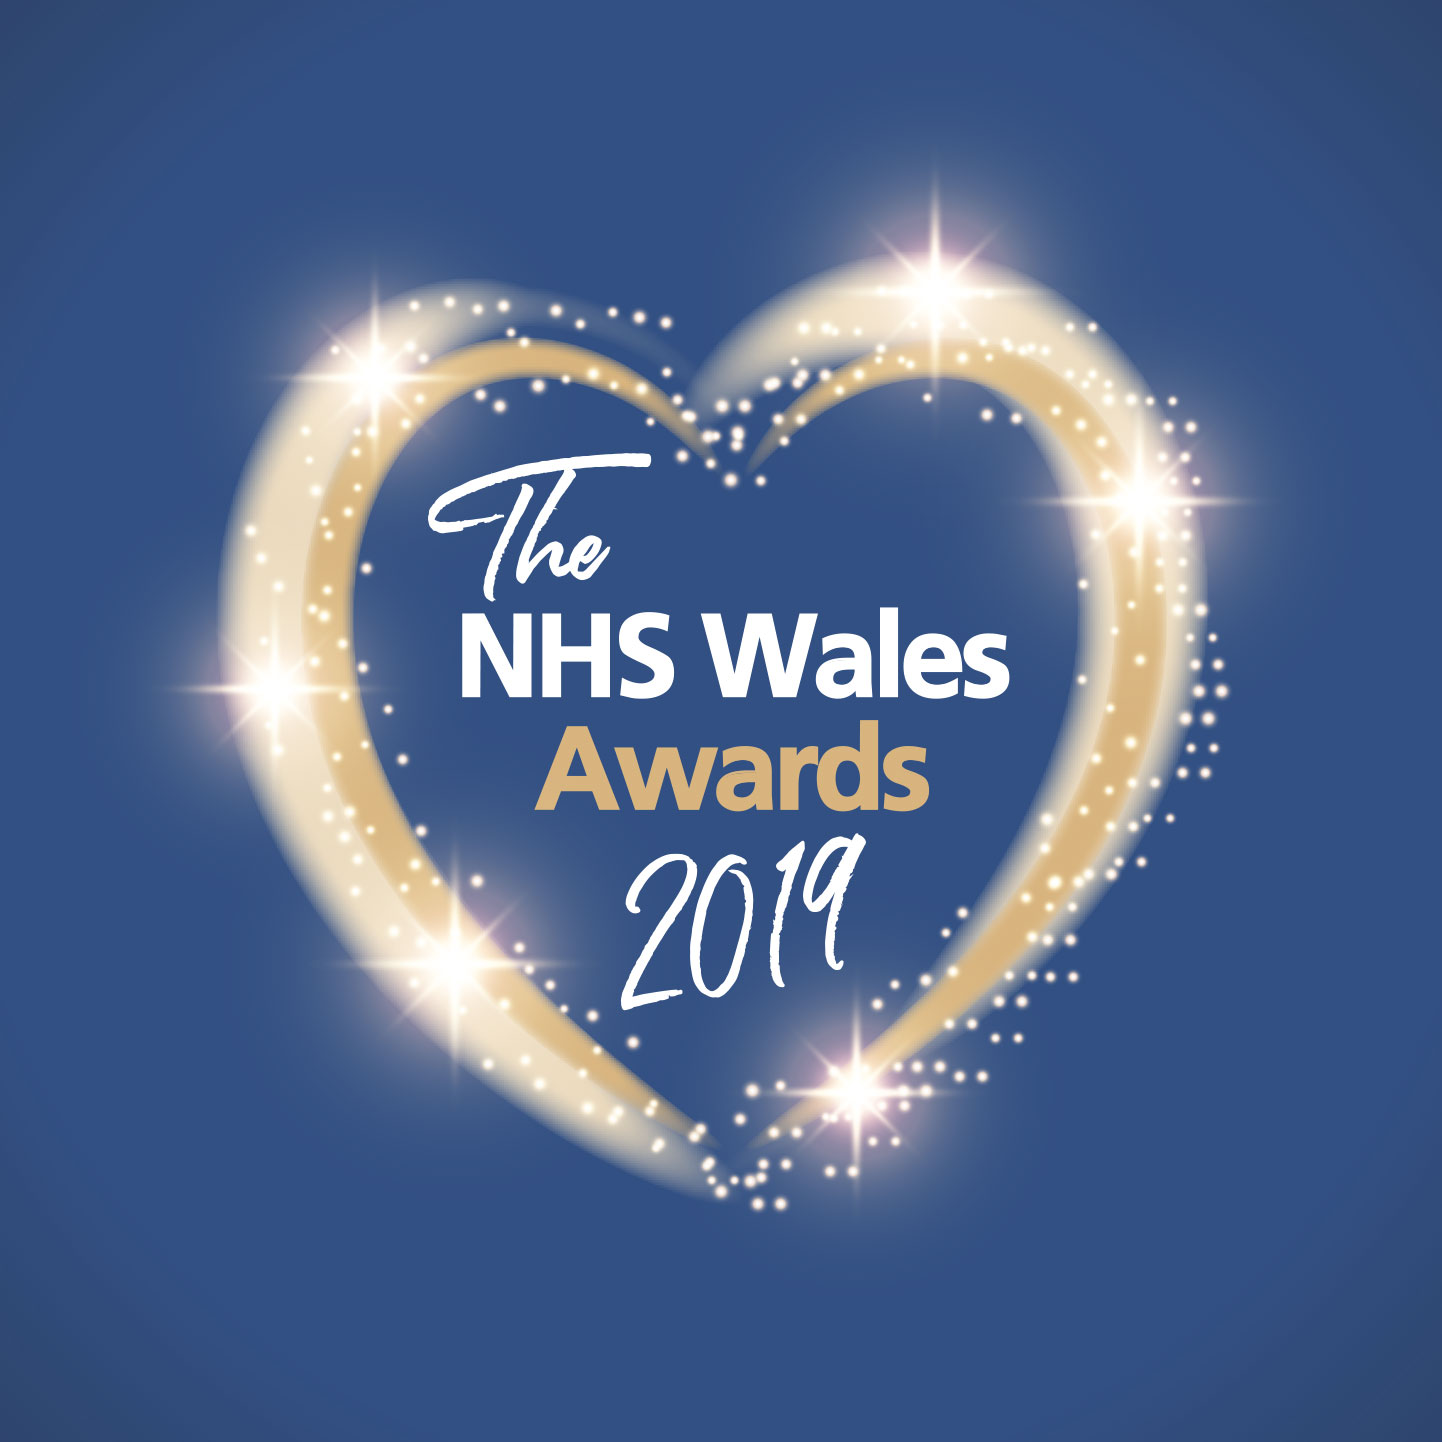 NHS Wales Awards Campaign